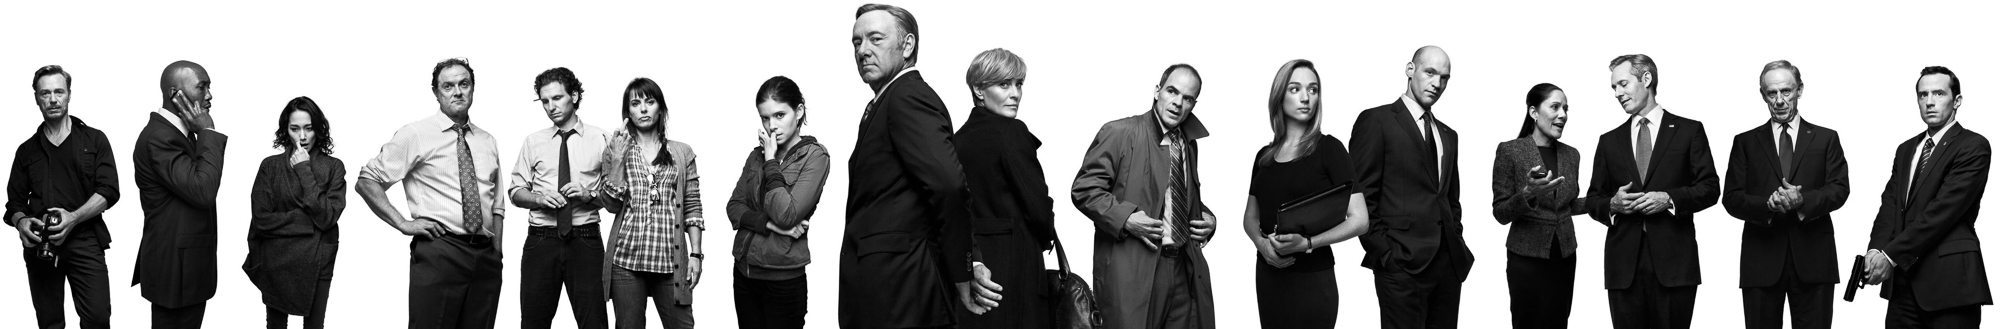 House Of Cards 4489 x 739